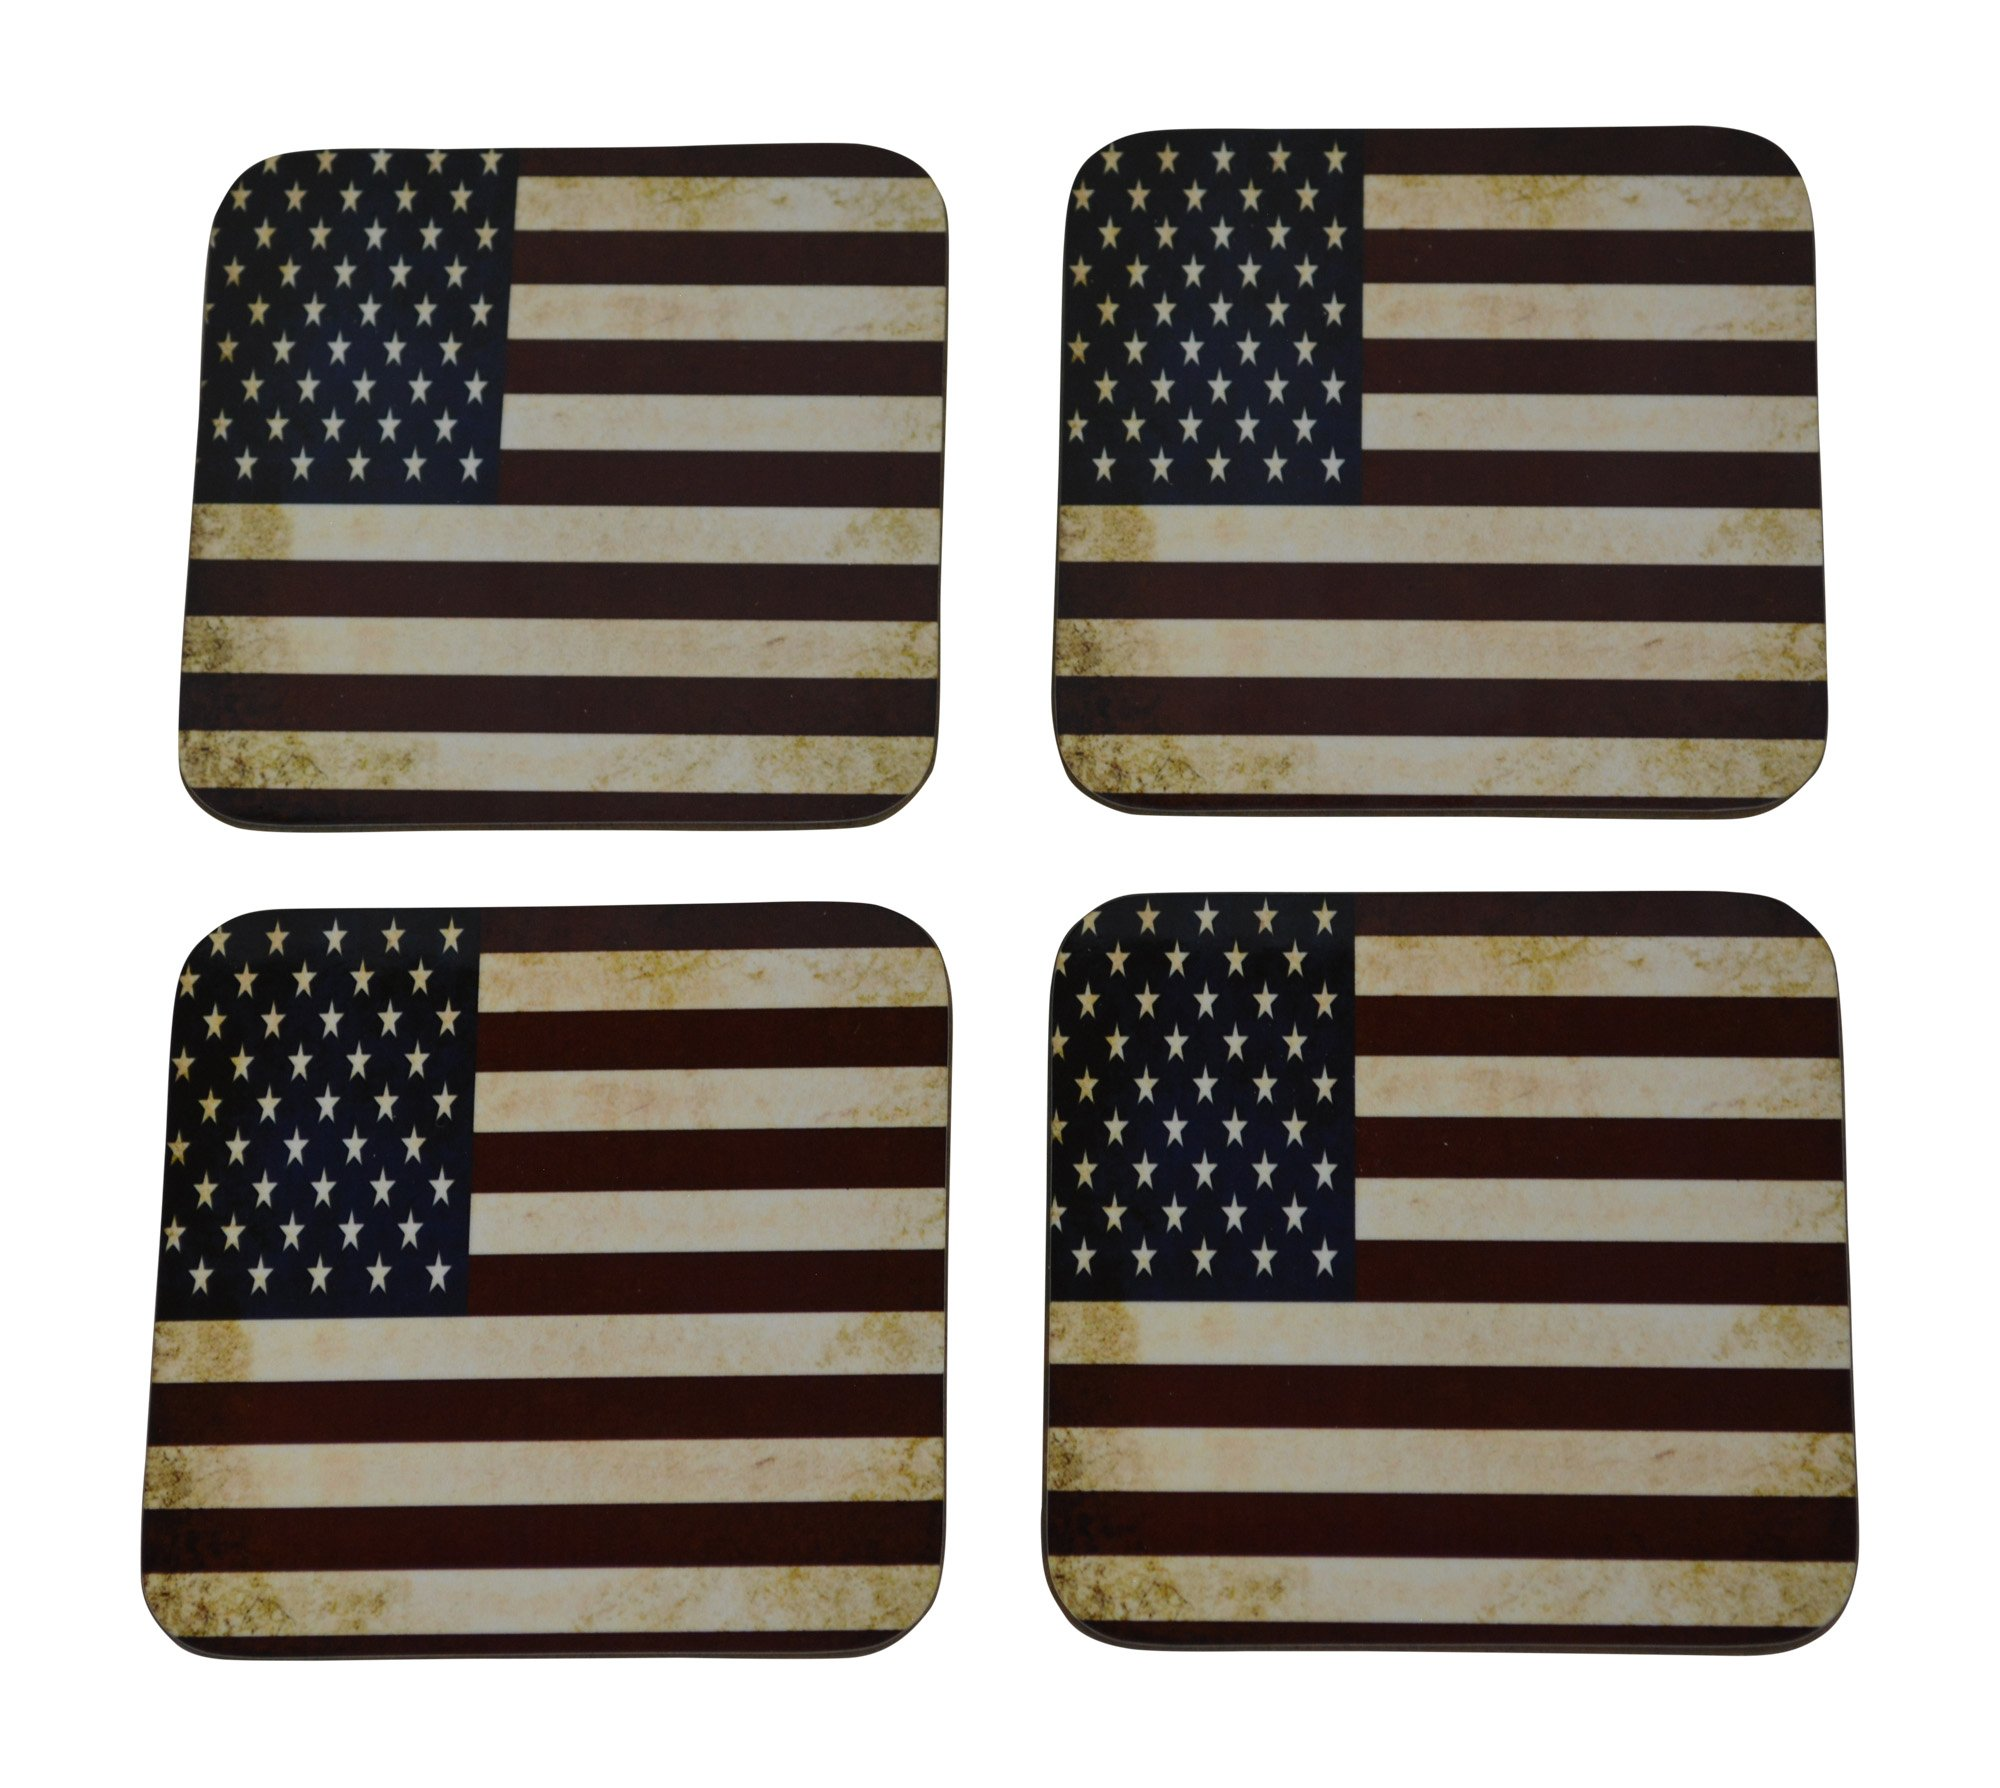 Patriotic USA Flag Drink Coaster Set Gift United States of America Home Kitchen Bar Barware Rustic